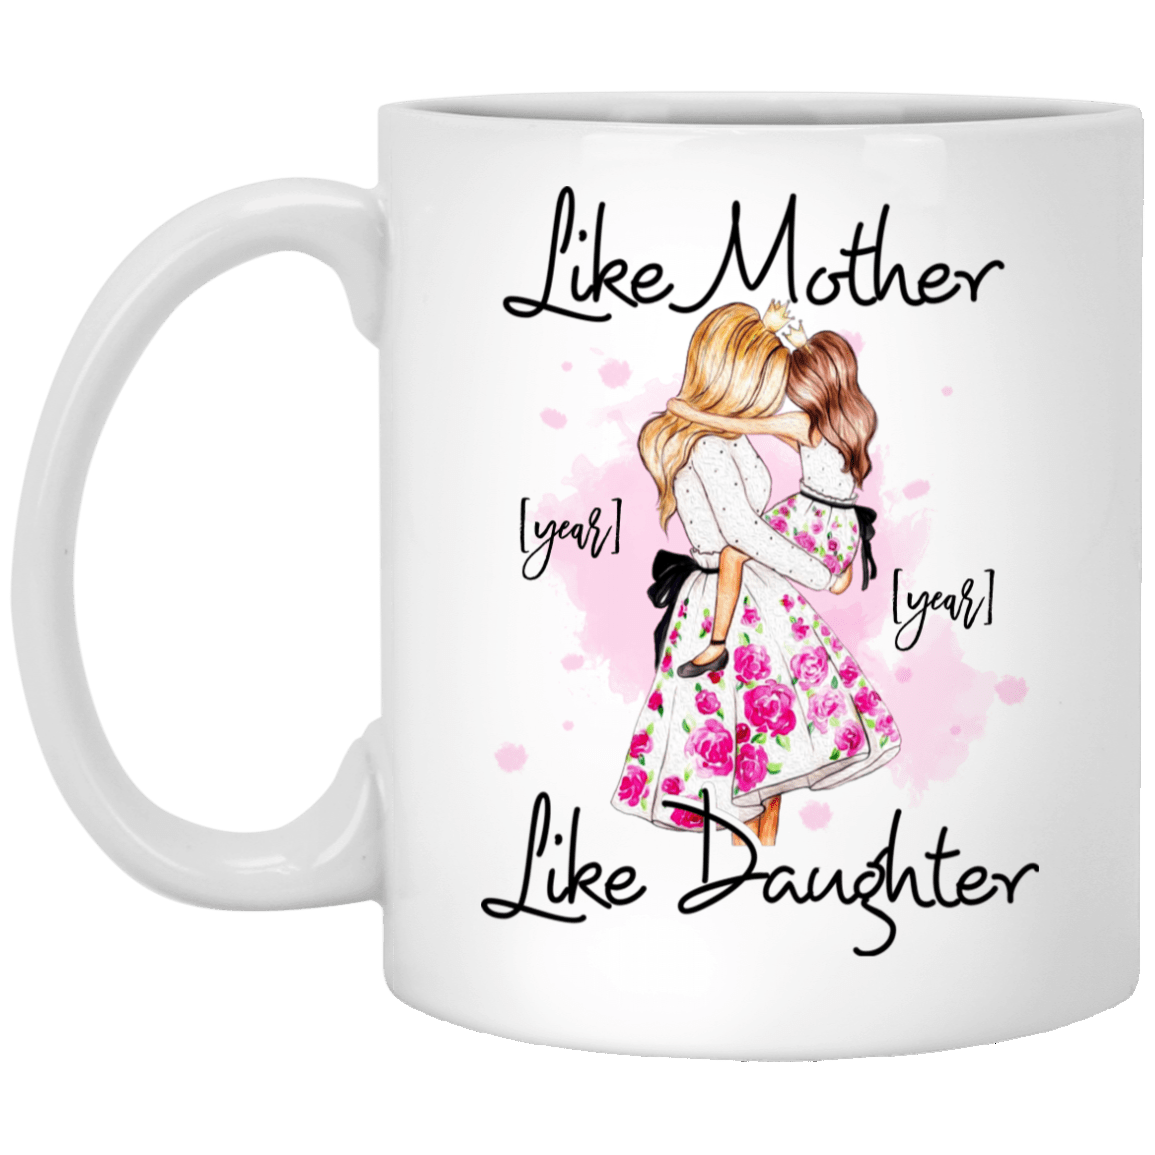 Like Mother Like Daughter Personalized Matching Mom Daughter Ceramic Coffee  Mug   Beer Stein   Color Changing Mug